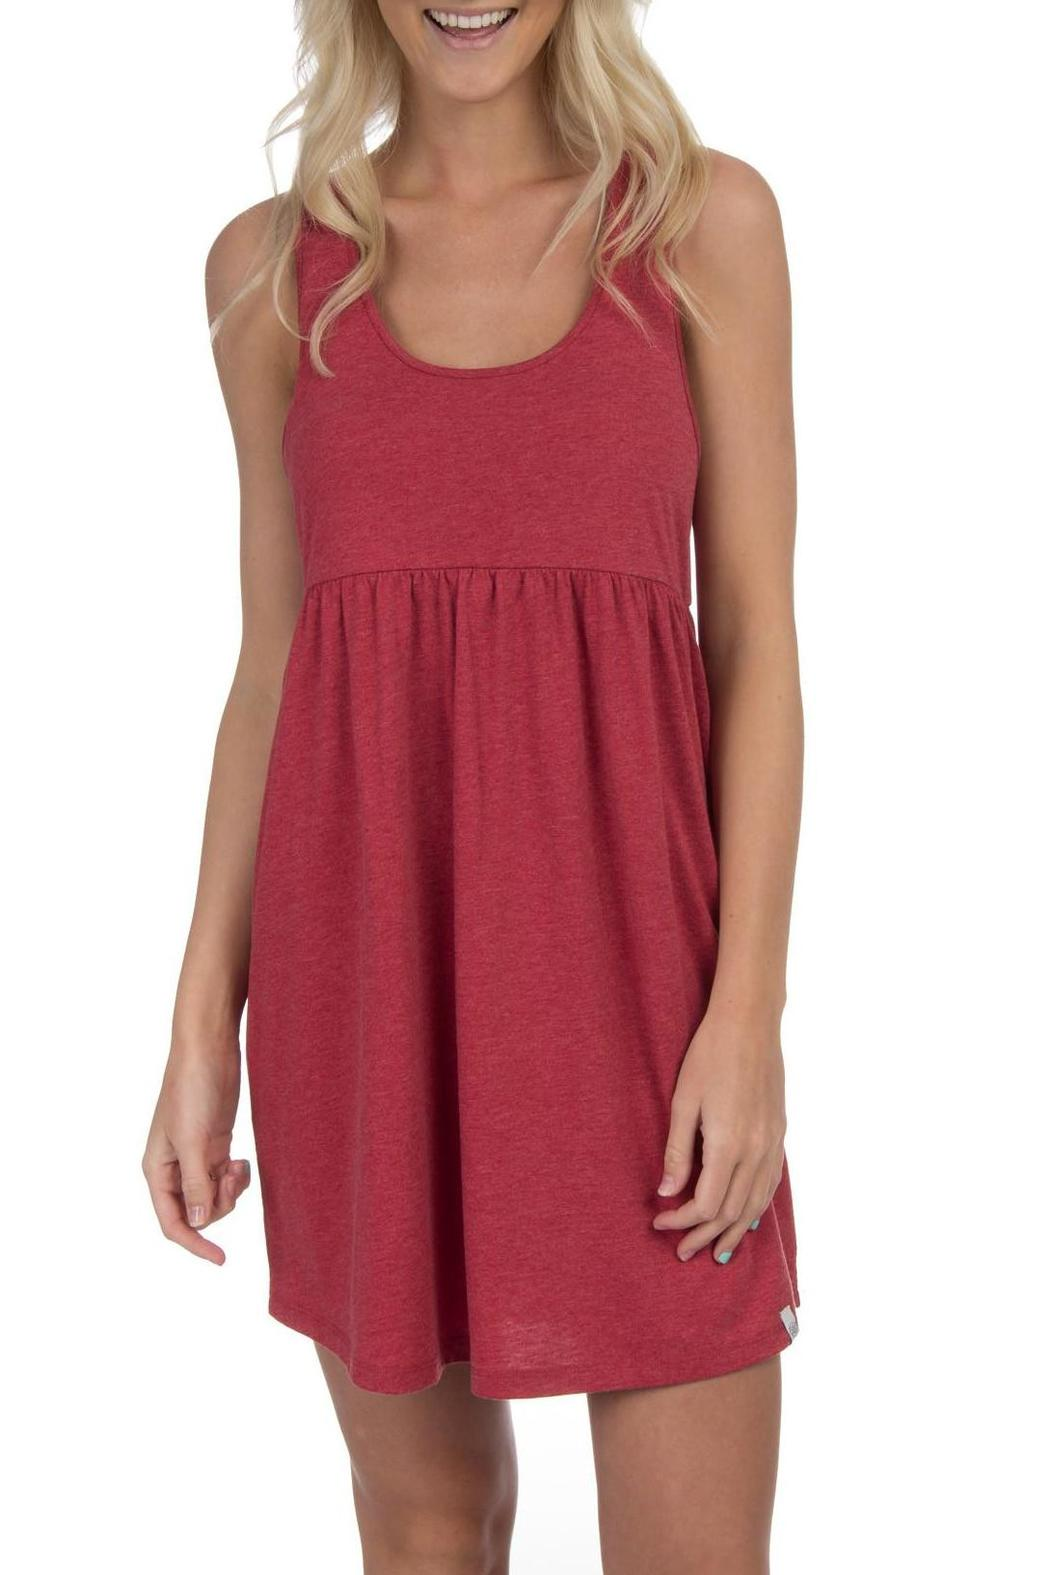 Lauren James Tailgate Dress - Main Image